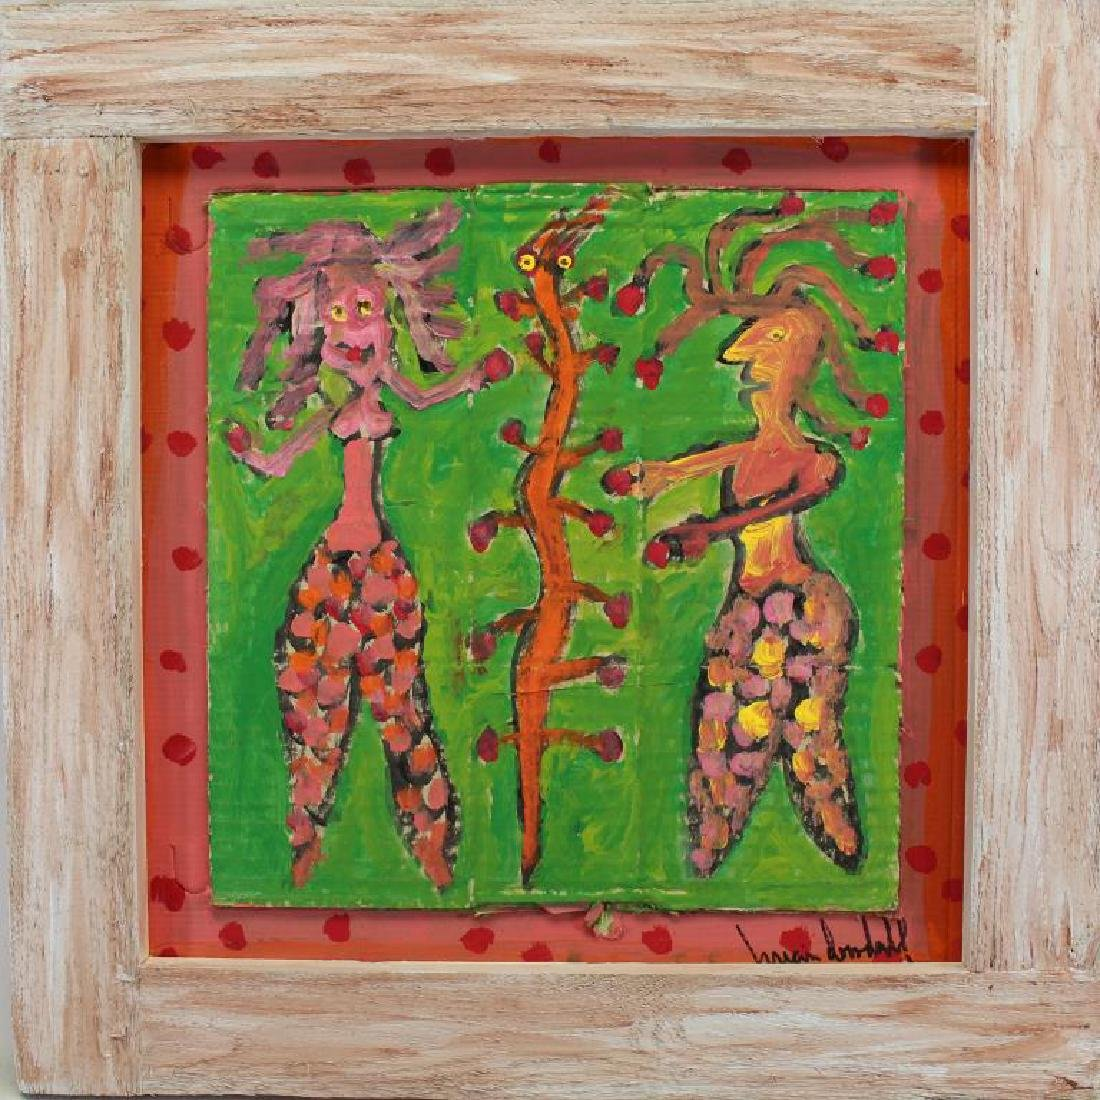 Brian Dowdall (born 1948) Outsider Art